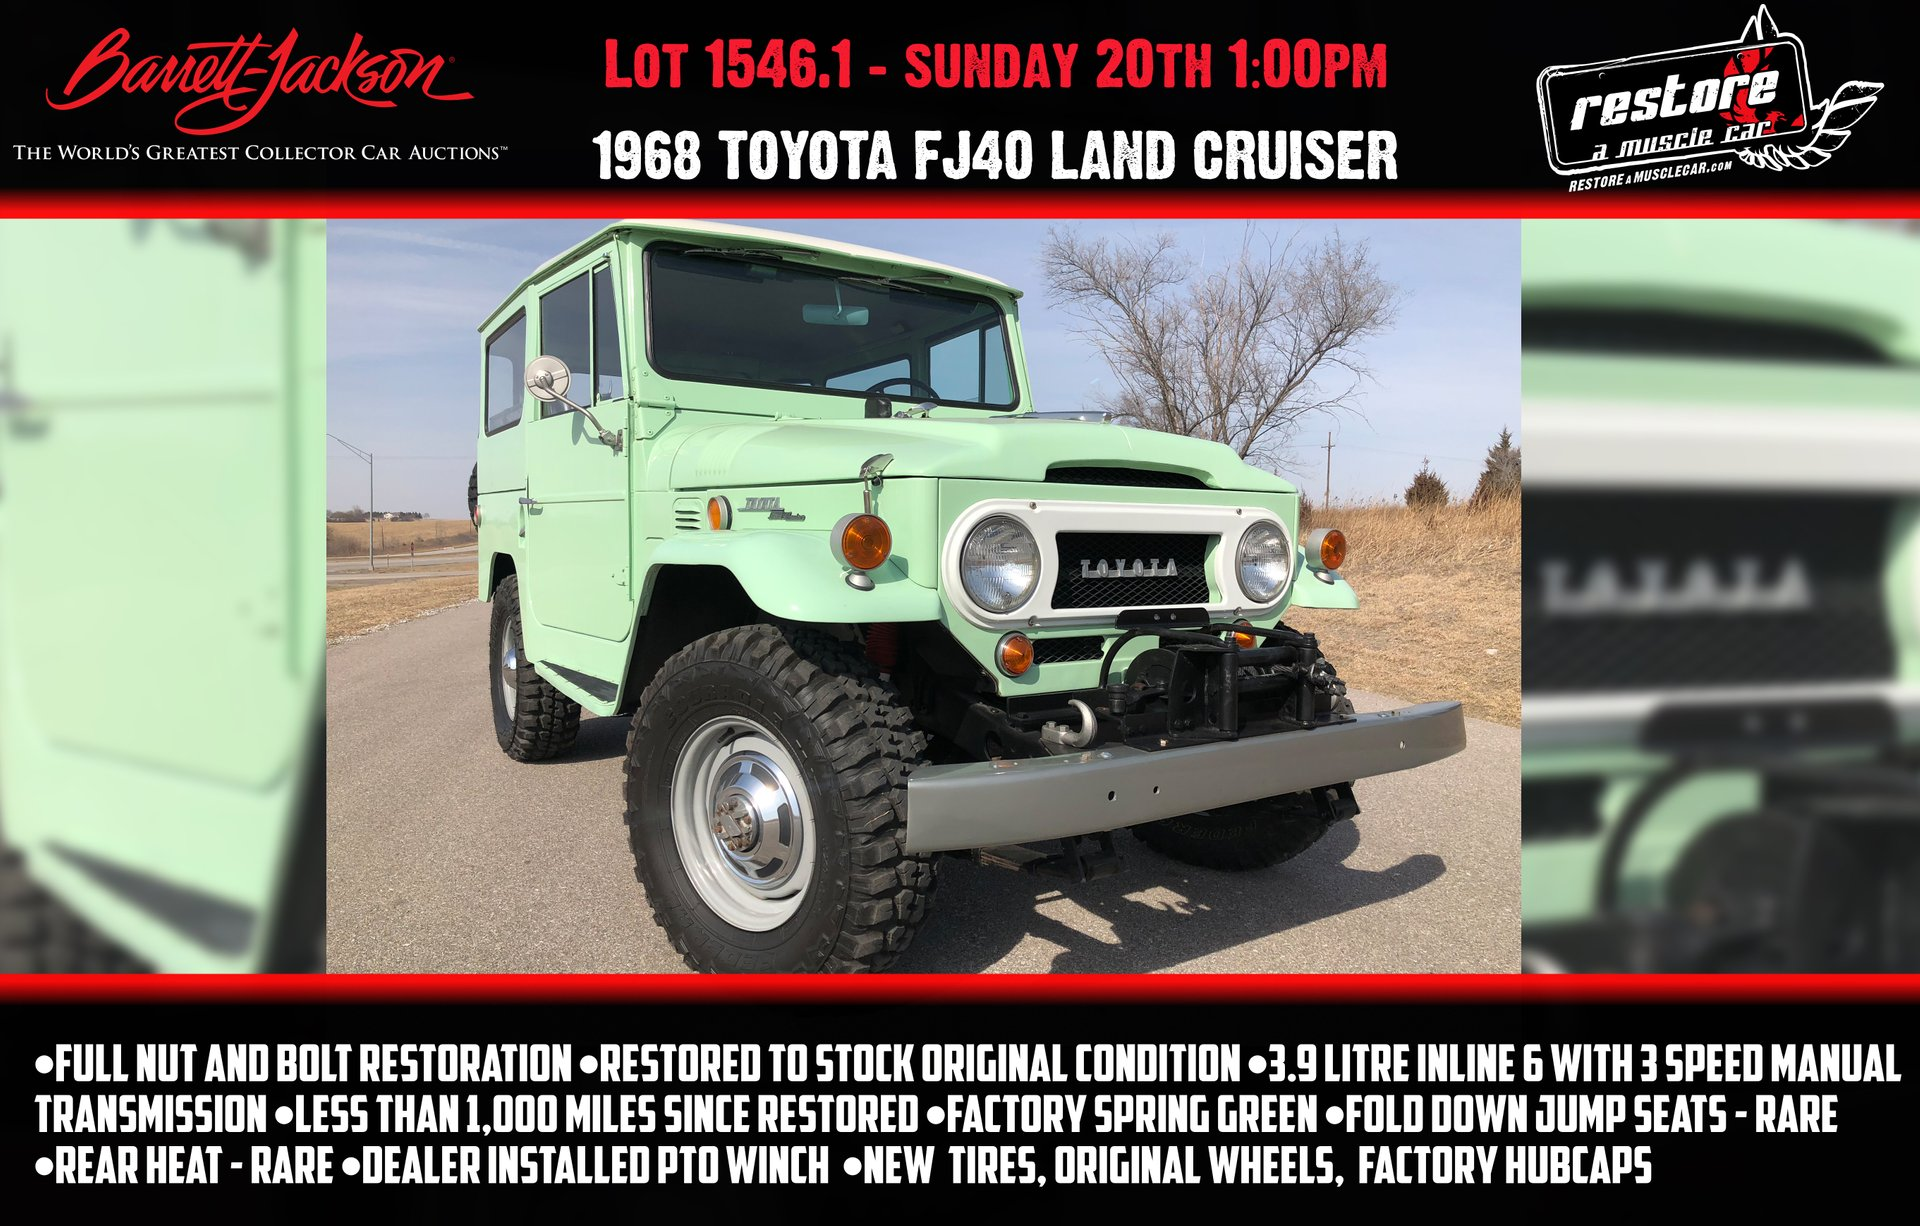 1968 Toyota Land Cruiser | Restore A Muscle Car™ LLC